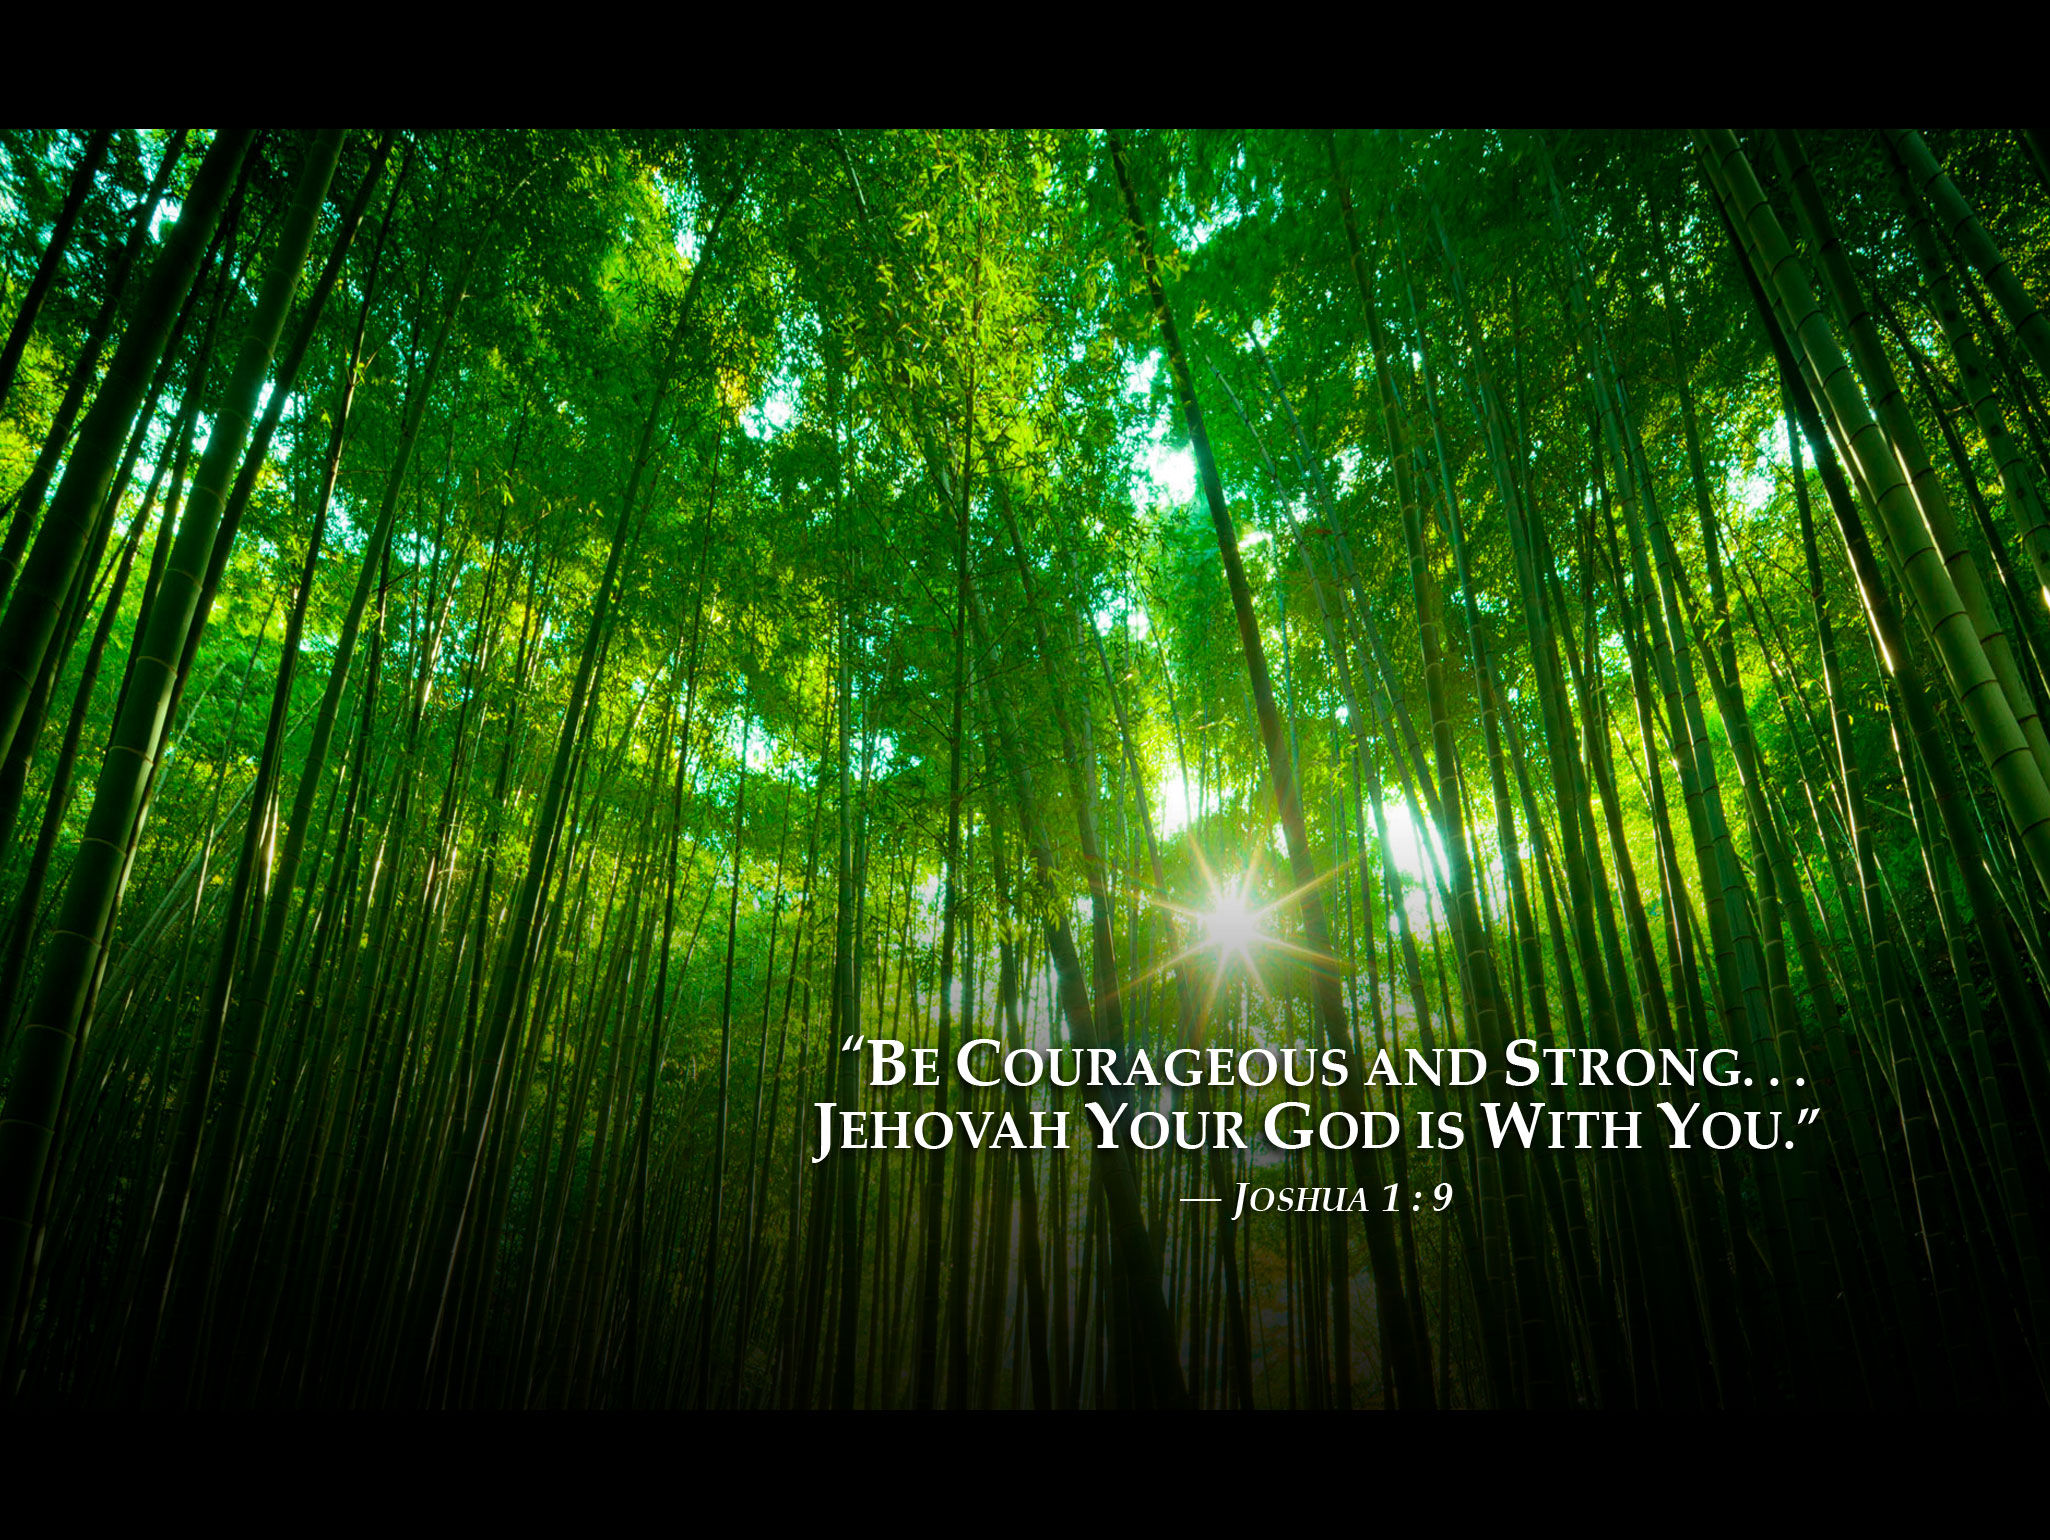 Iphone Android Desktop Backgrounds: Bambooforest 2013 Jehovah Witnesses Yeartext For Ipad